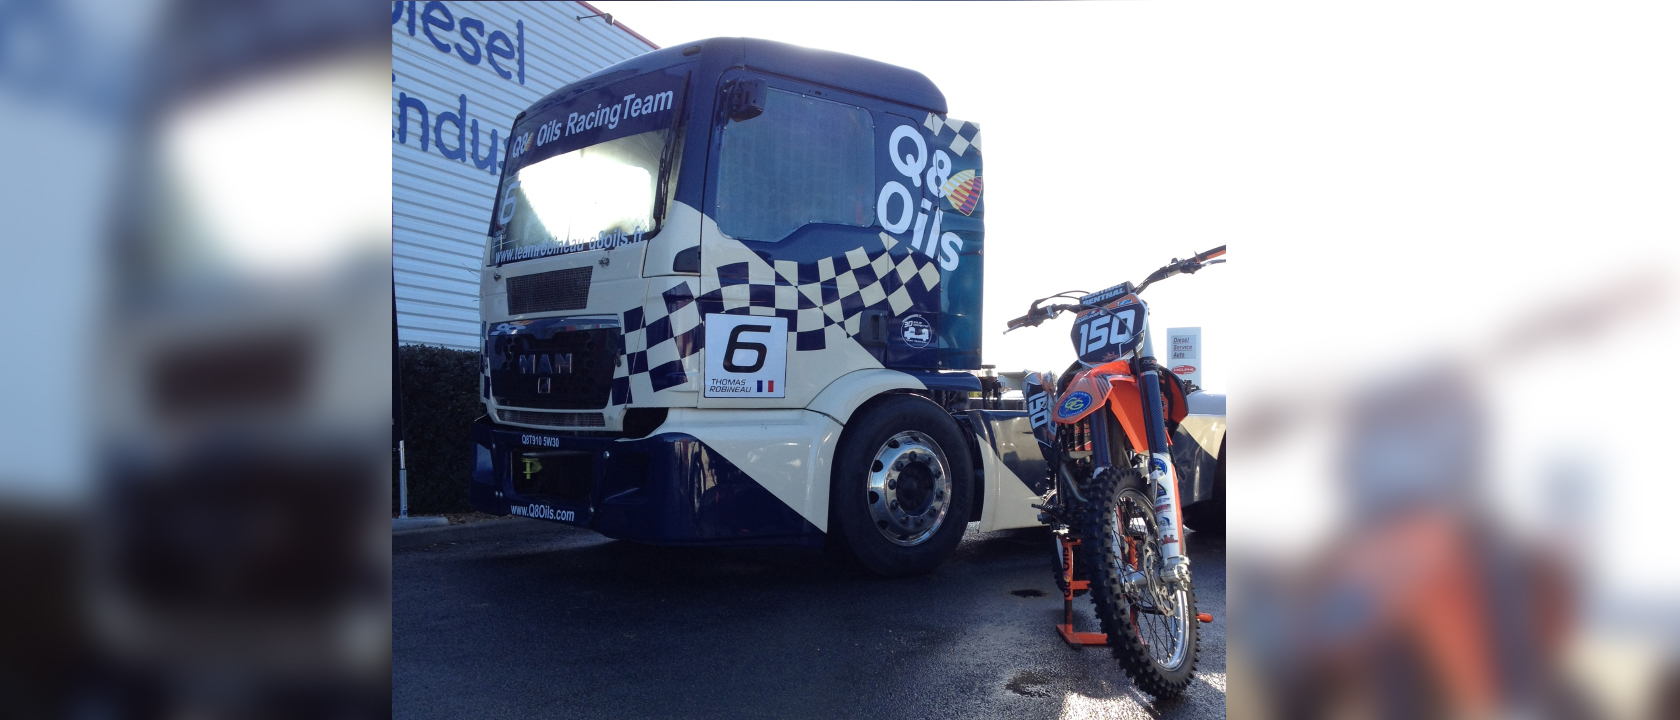 Camion Q8 Oils - ETS Guiliani